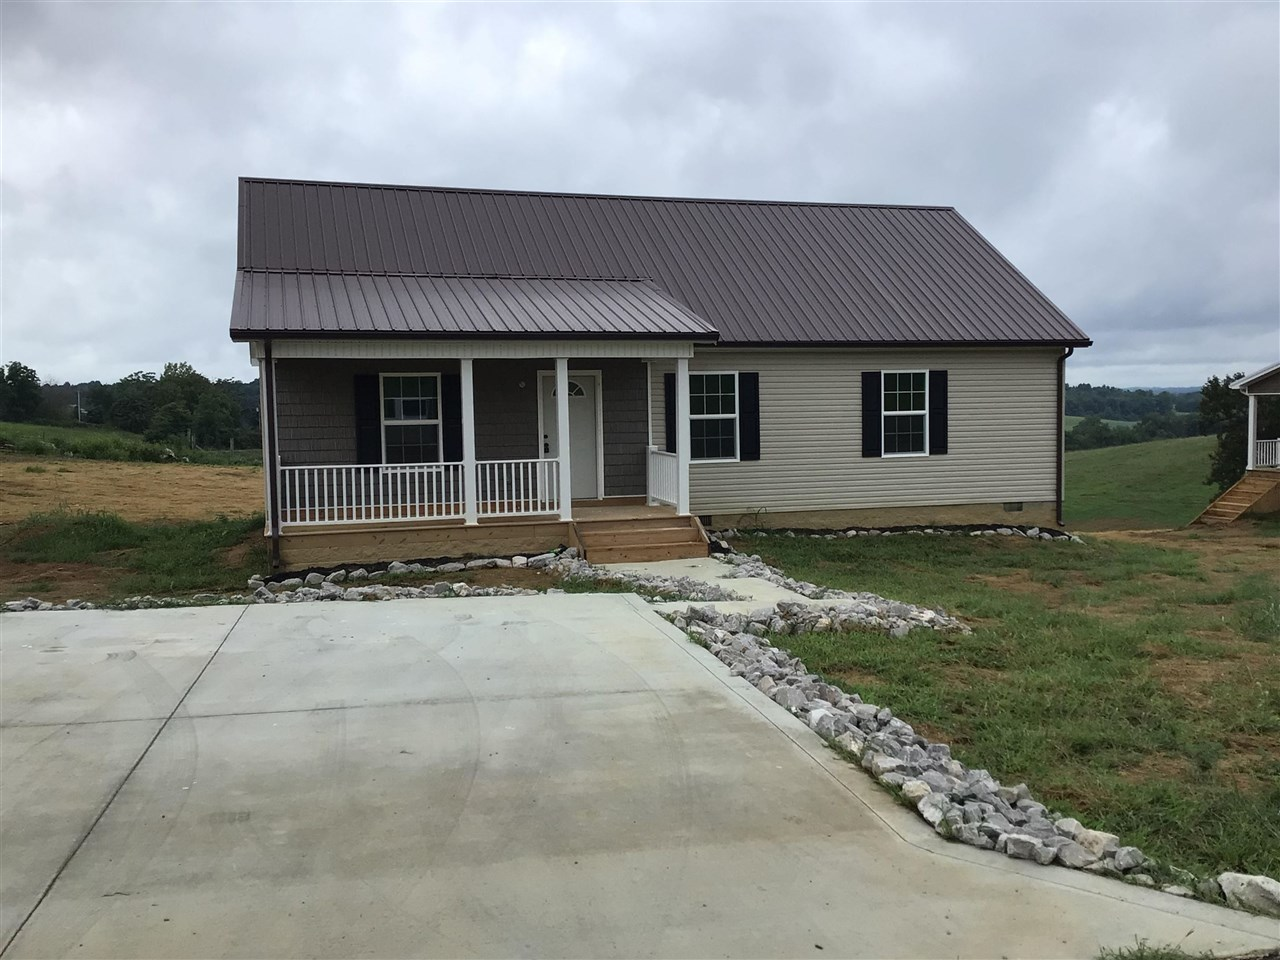 1288 SqFt House In Tompkinsville